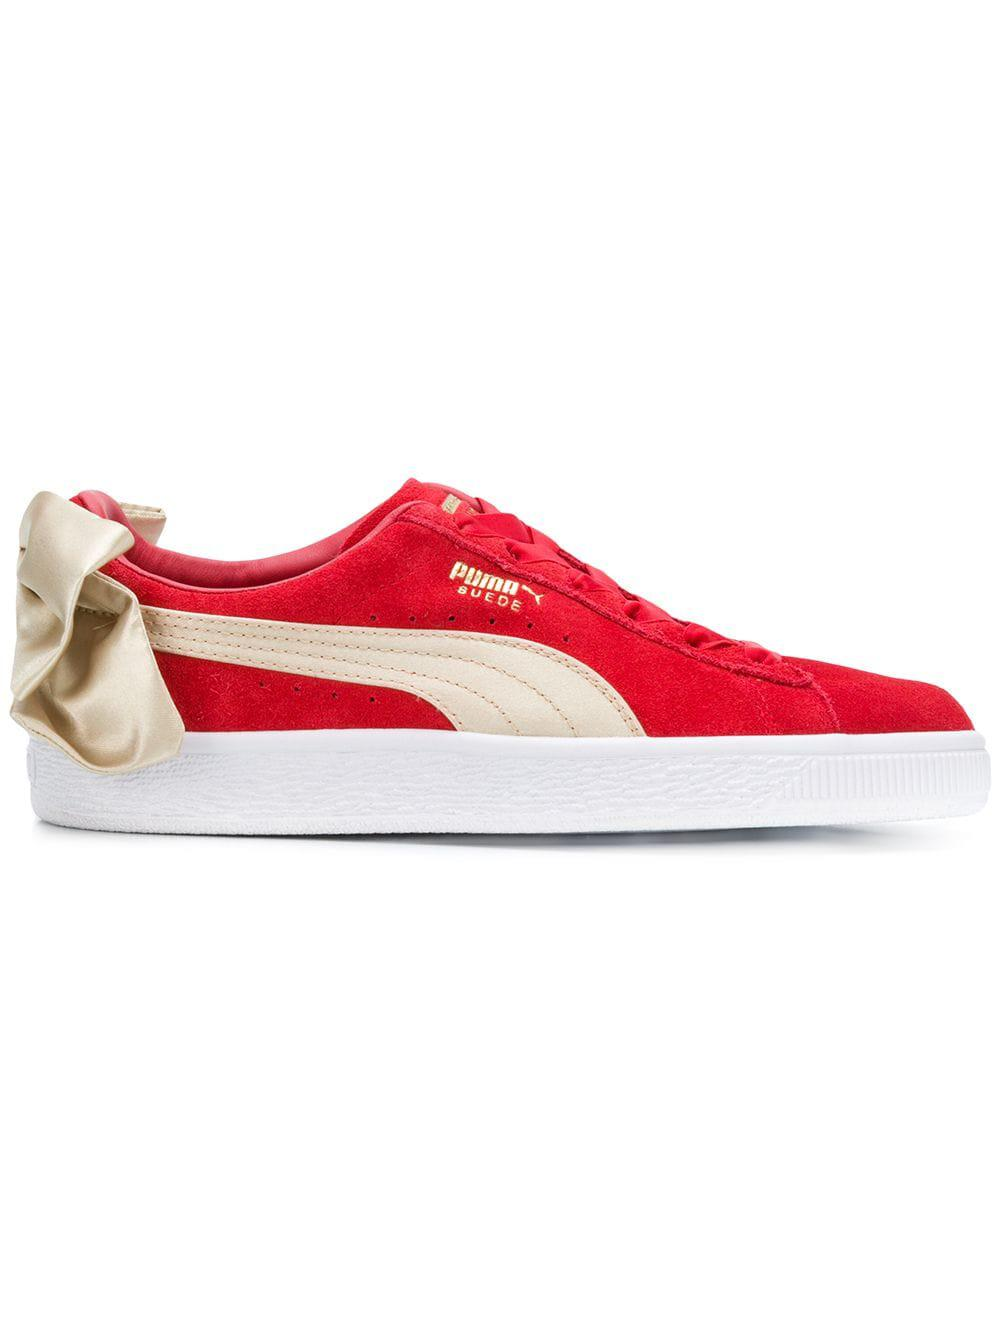 f20e8eb9503175 Lyst - Puma Suede Bow Varsity in Red